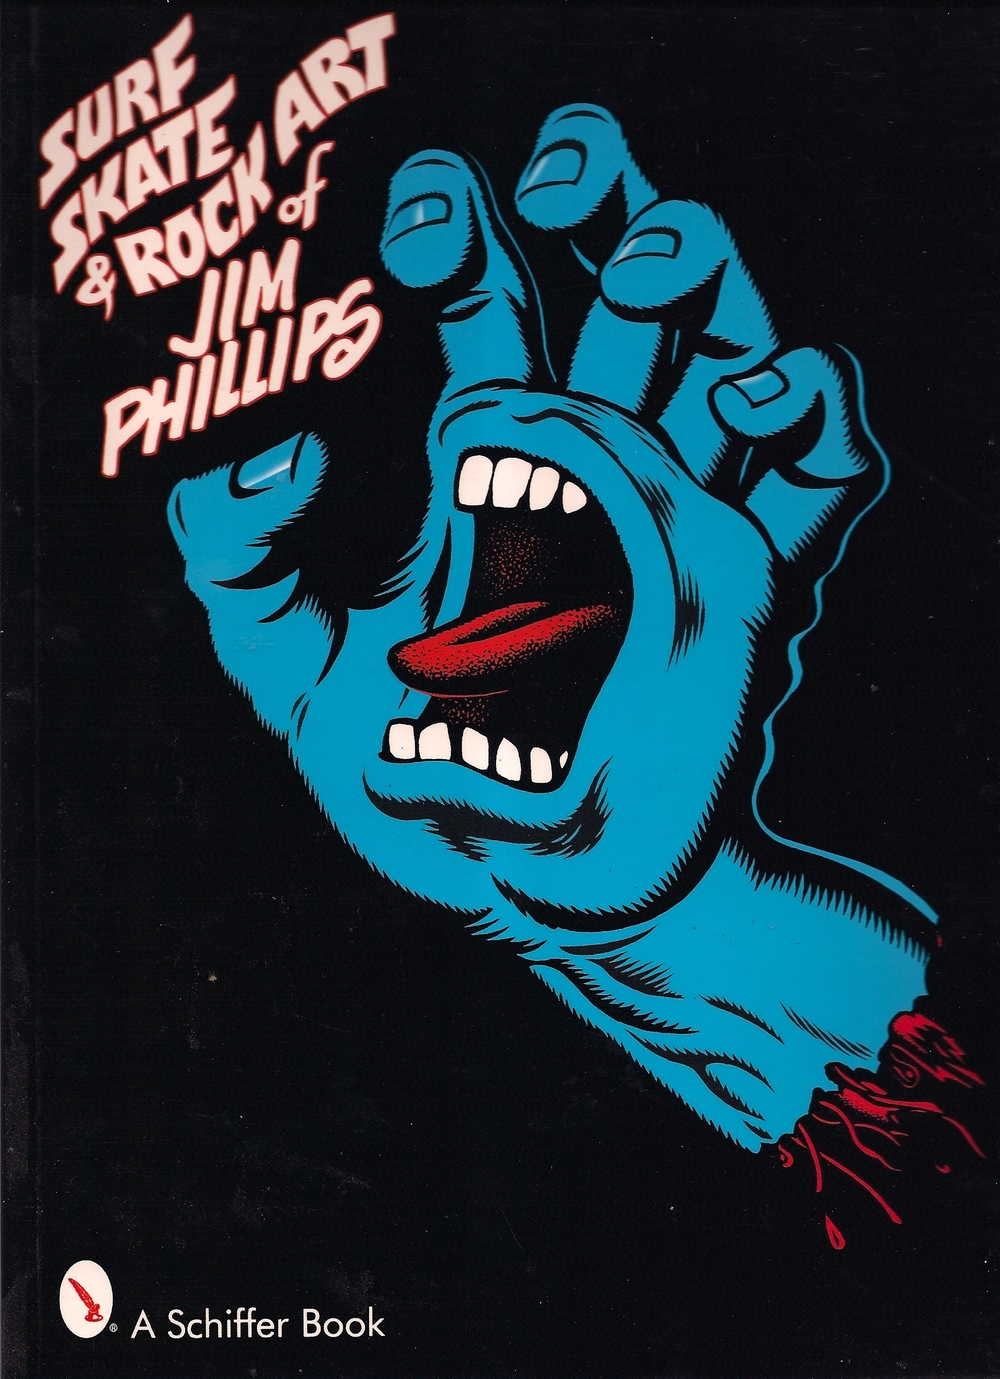 The Surf, Skate and Rock and Roll Art of Jim Phillips (2004)